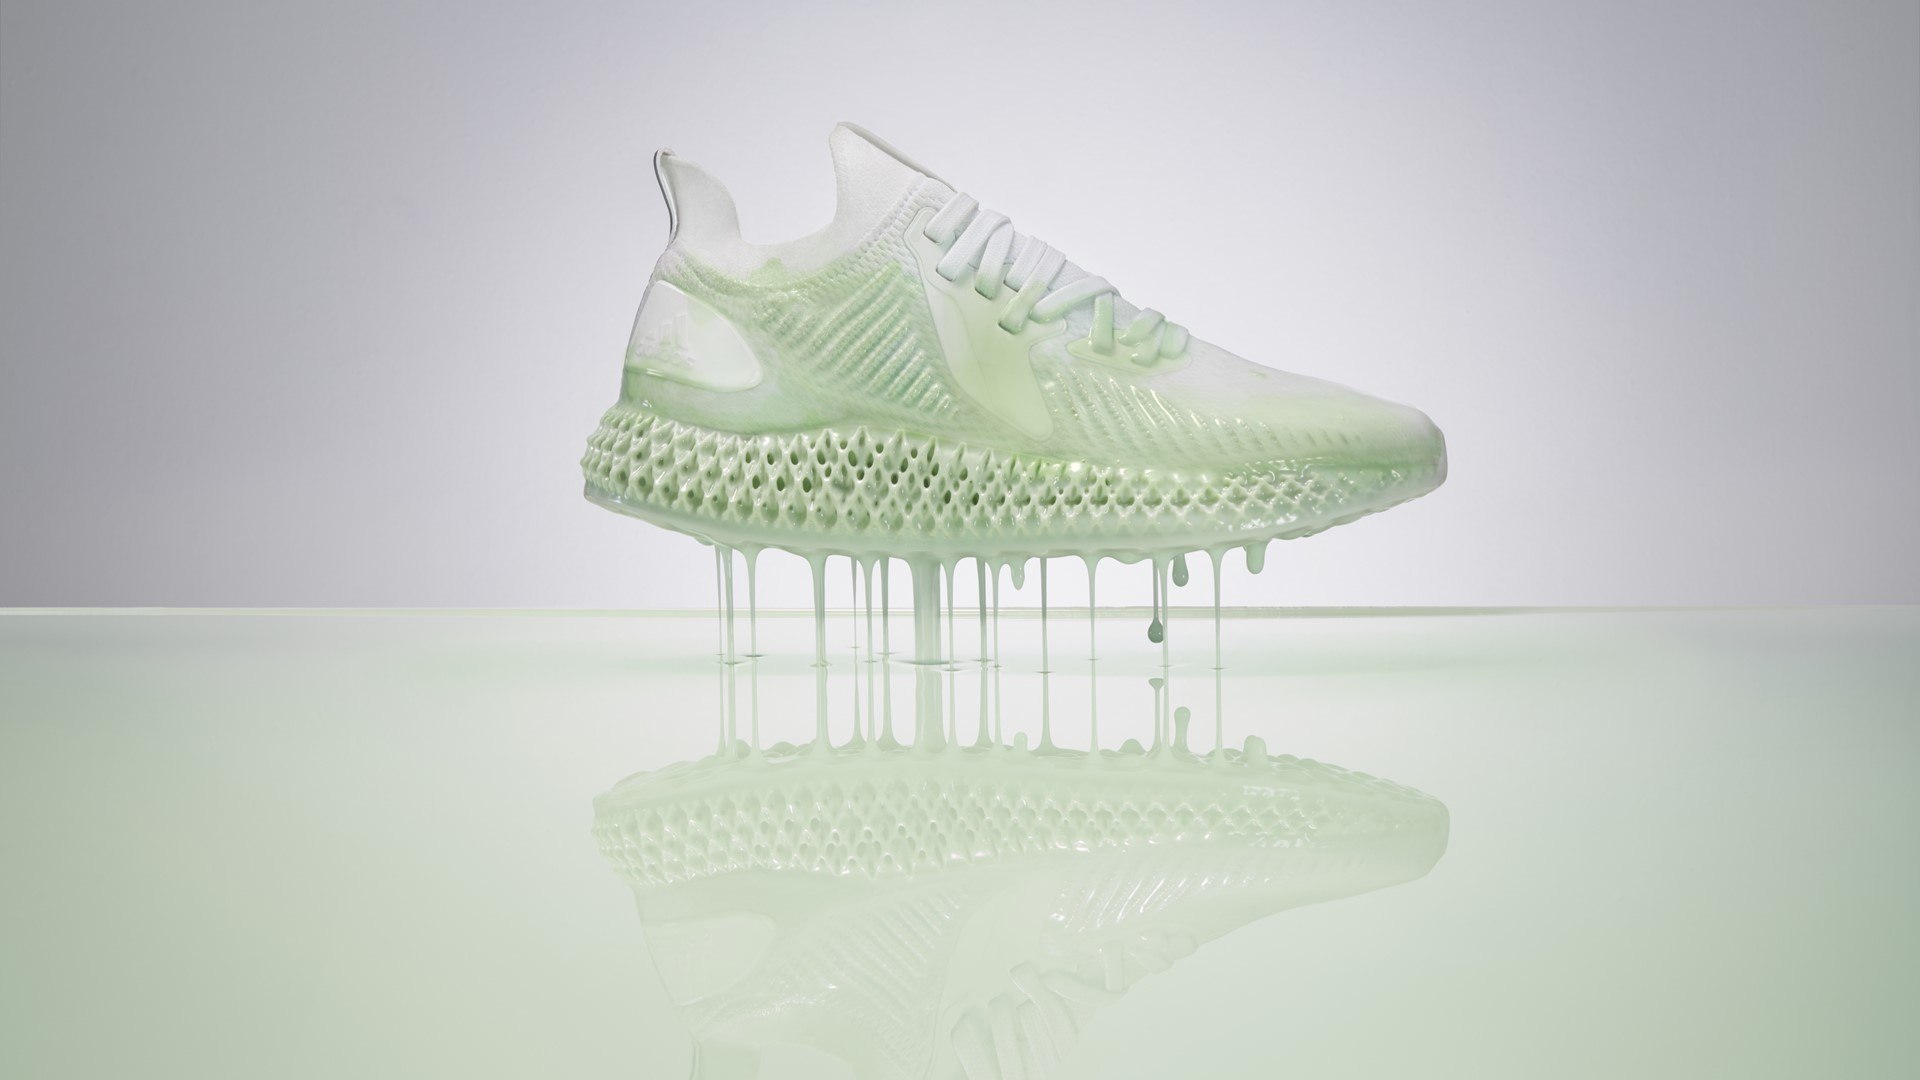 adidas unveils evolved Alphaedge 4D, featuring triple white and ...